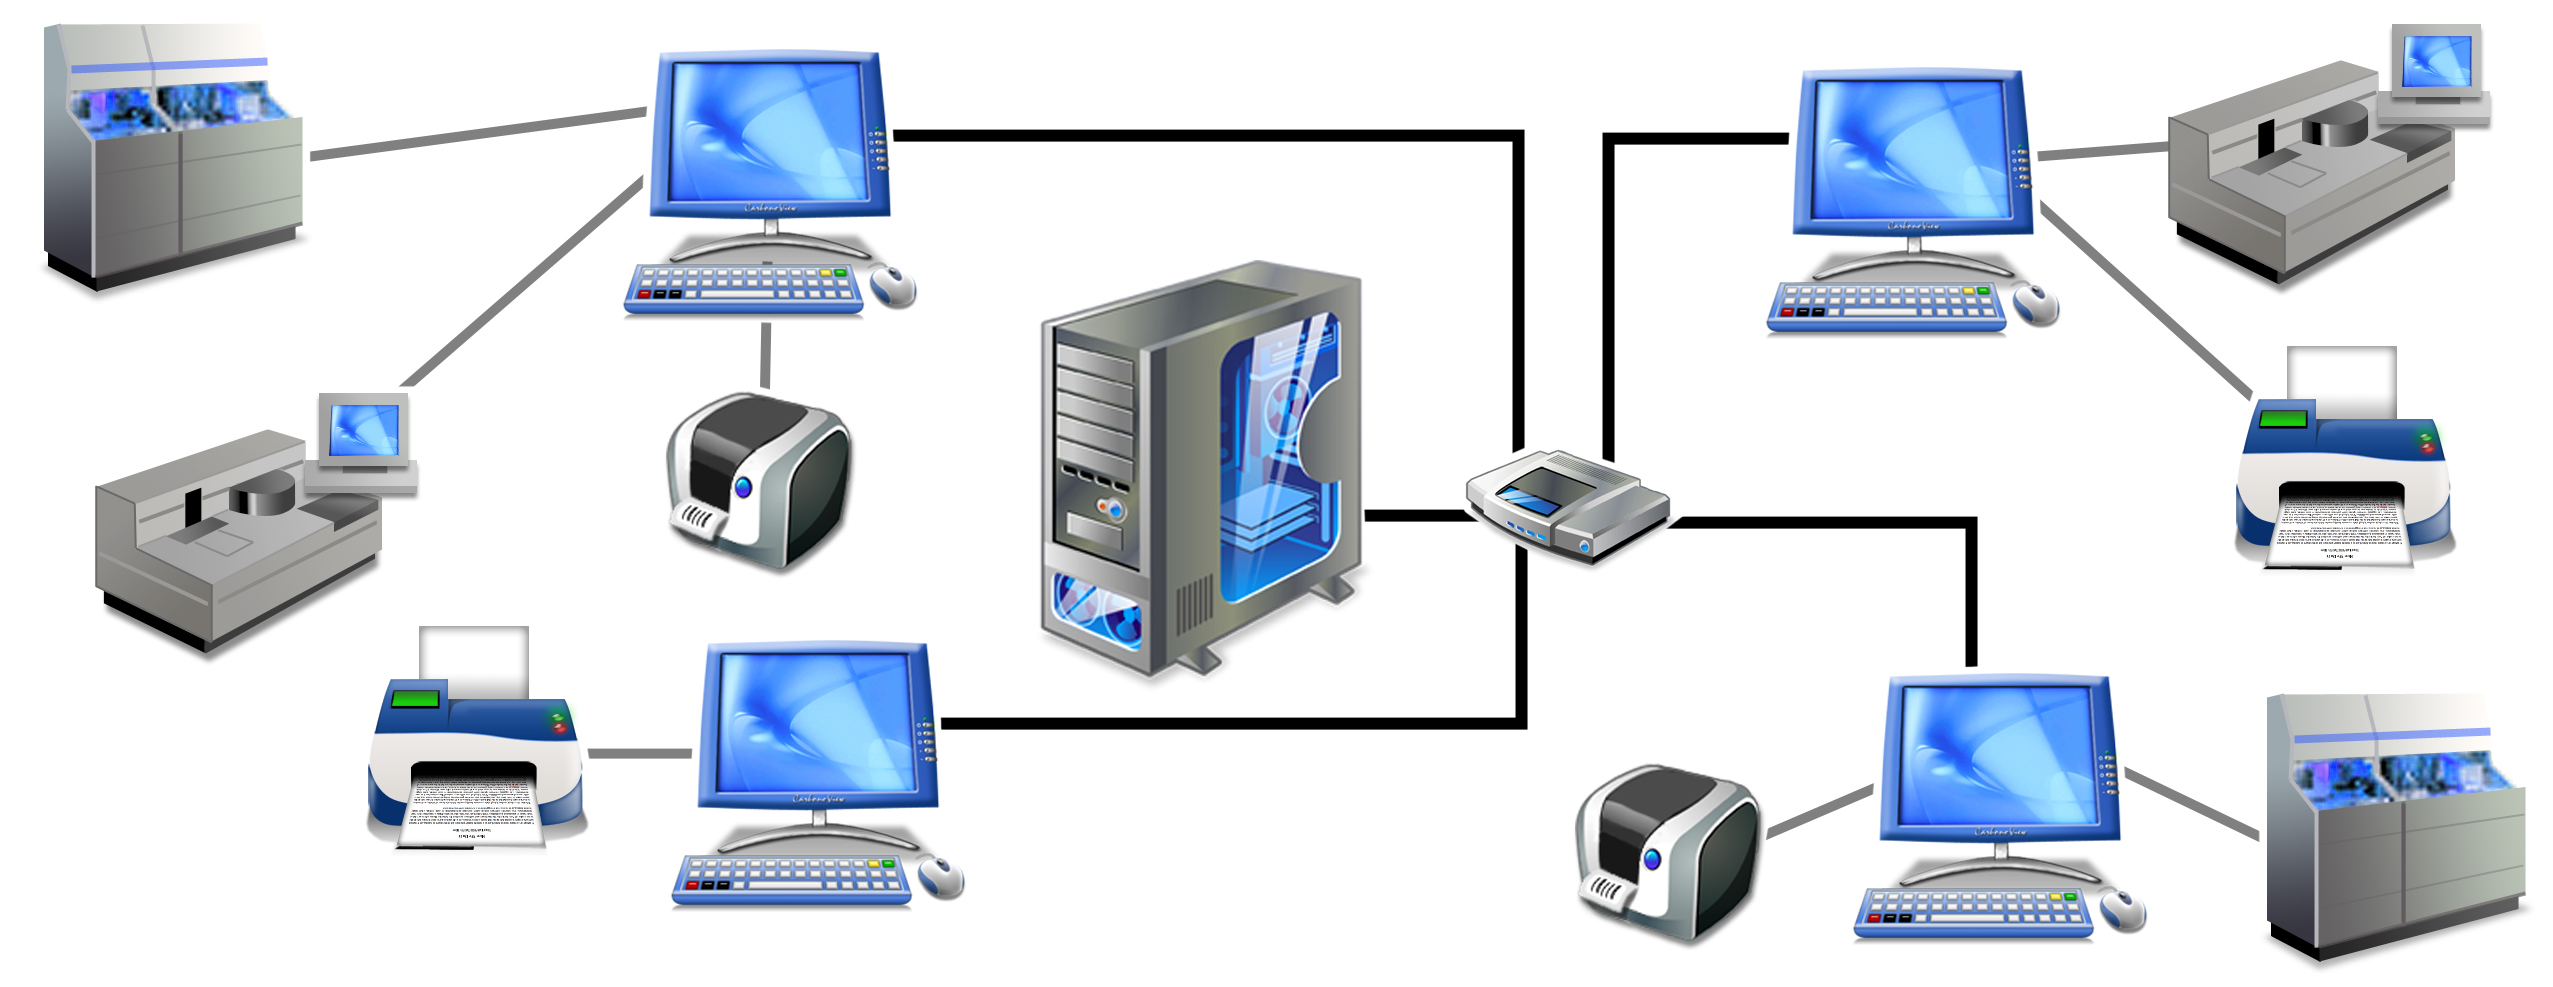 Best Information About NAS Server